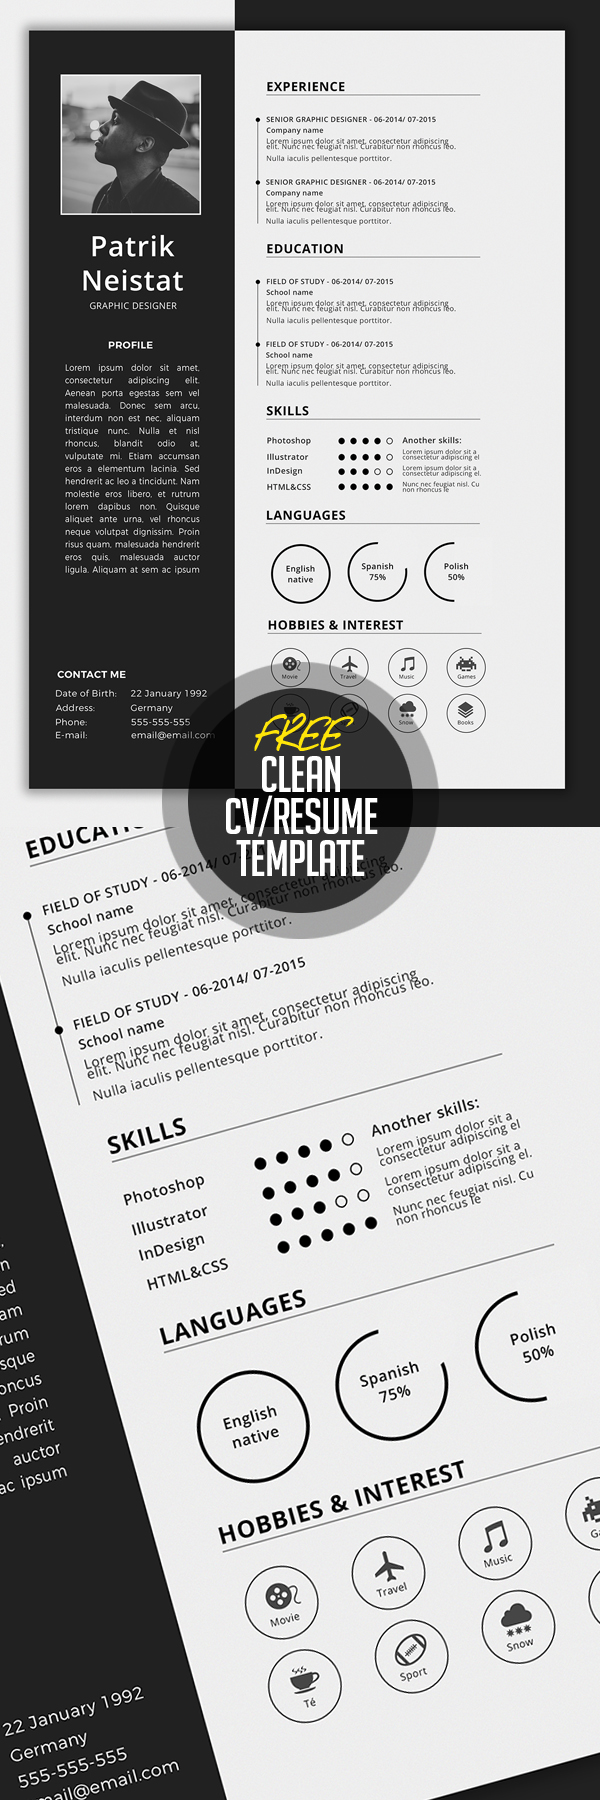 simple cvresume template free download - Downloadable Resume Templates Free